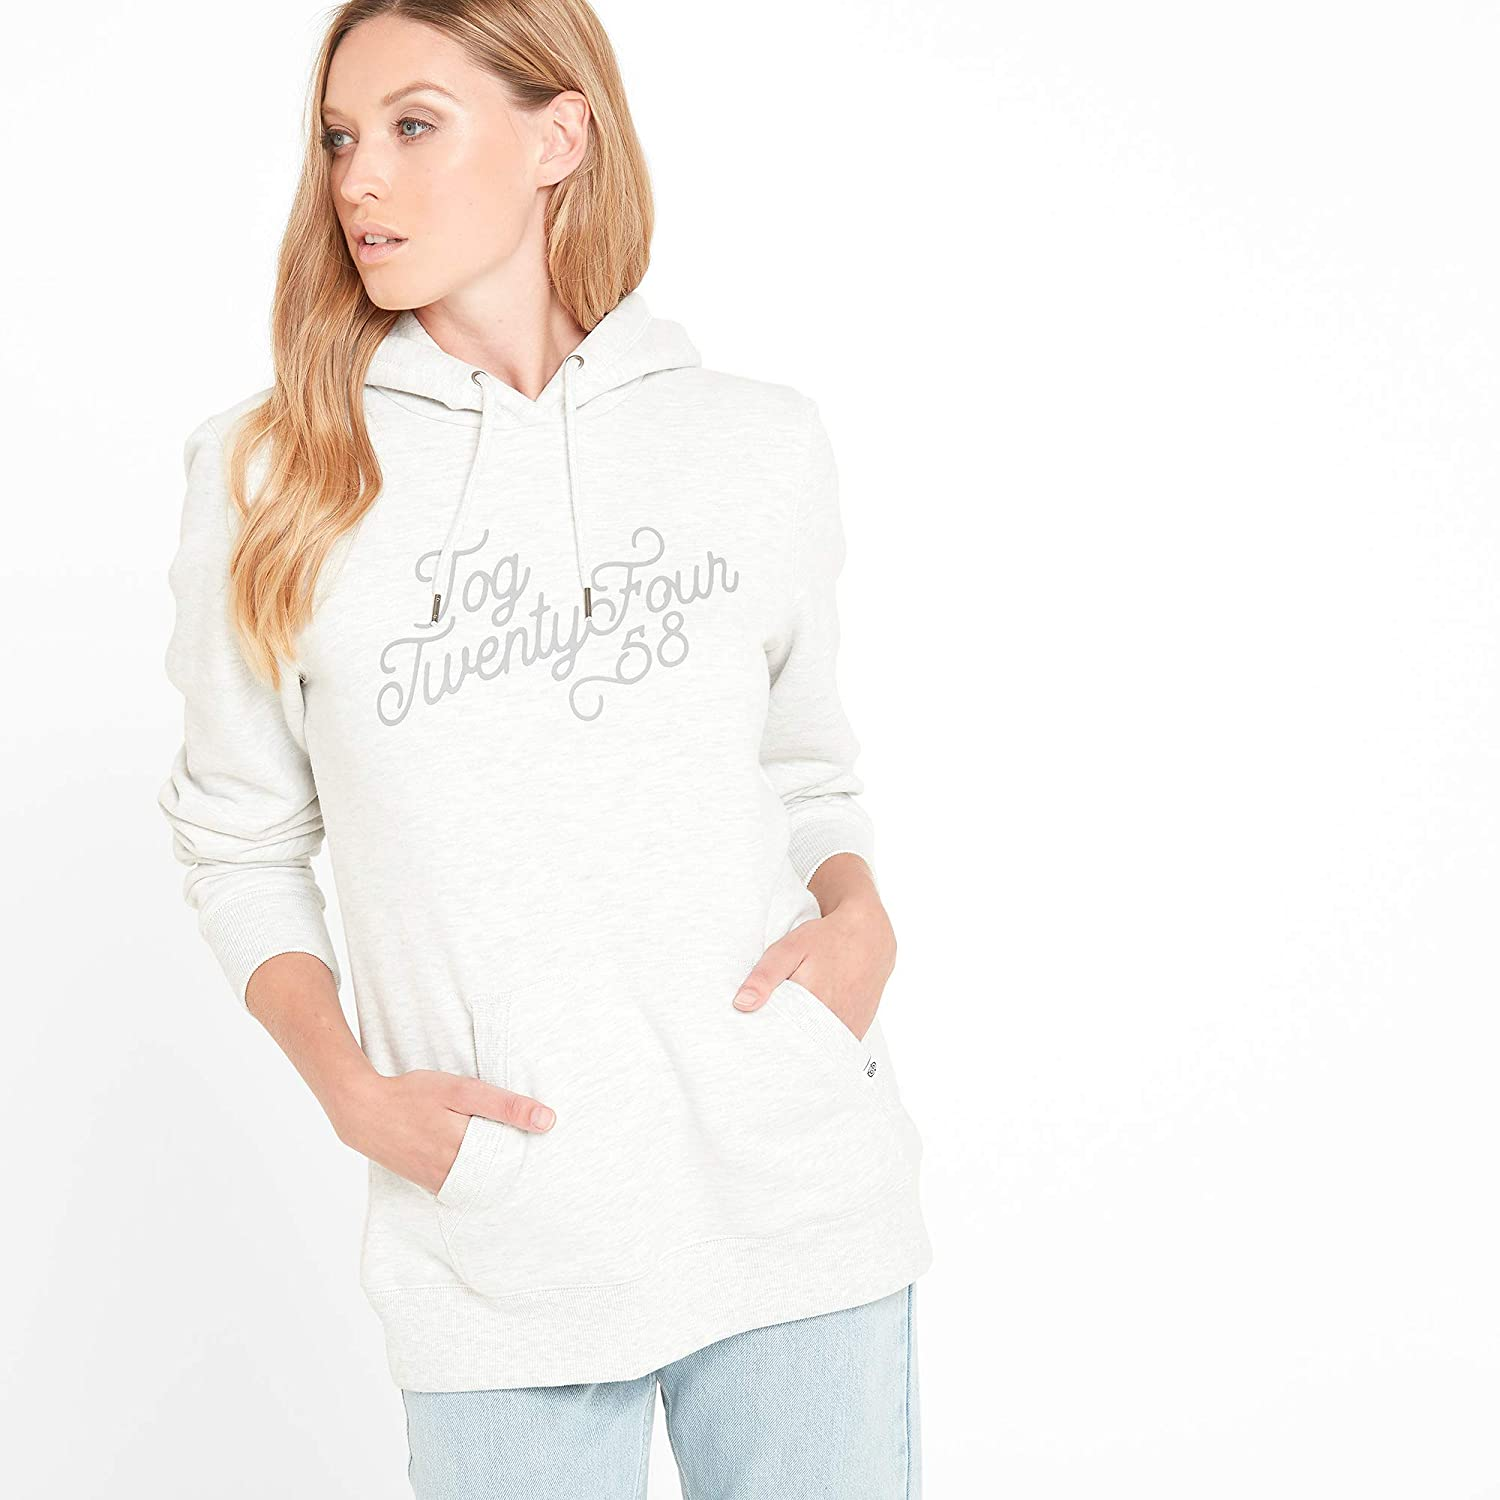 Super Soft Cosy Warm Hooded Sweater Ribbed Cuffs Hem TOG 24 Mappleton Graphic Print Womens Hooded Sweatshirt Large Kangaroo Pockets and Hood with Draw Cord Durable Hoodie with Peach Finish